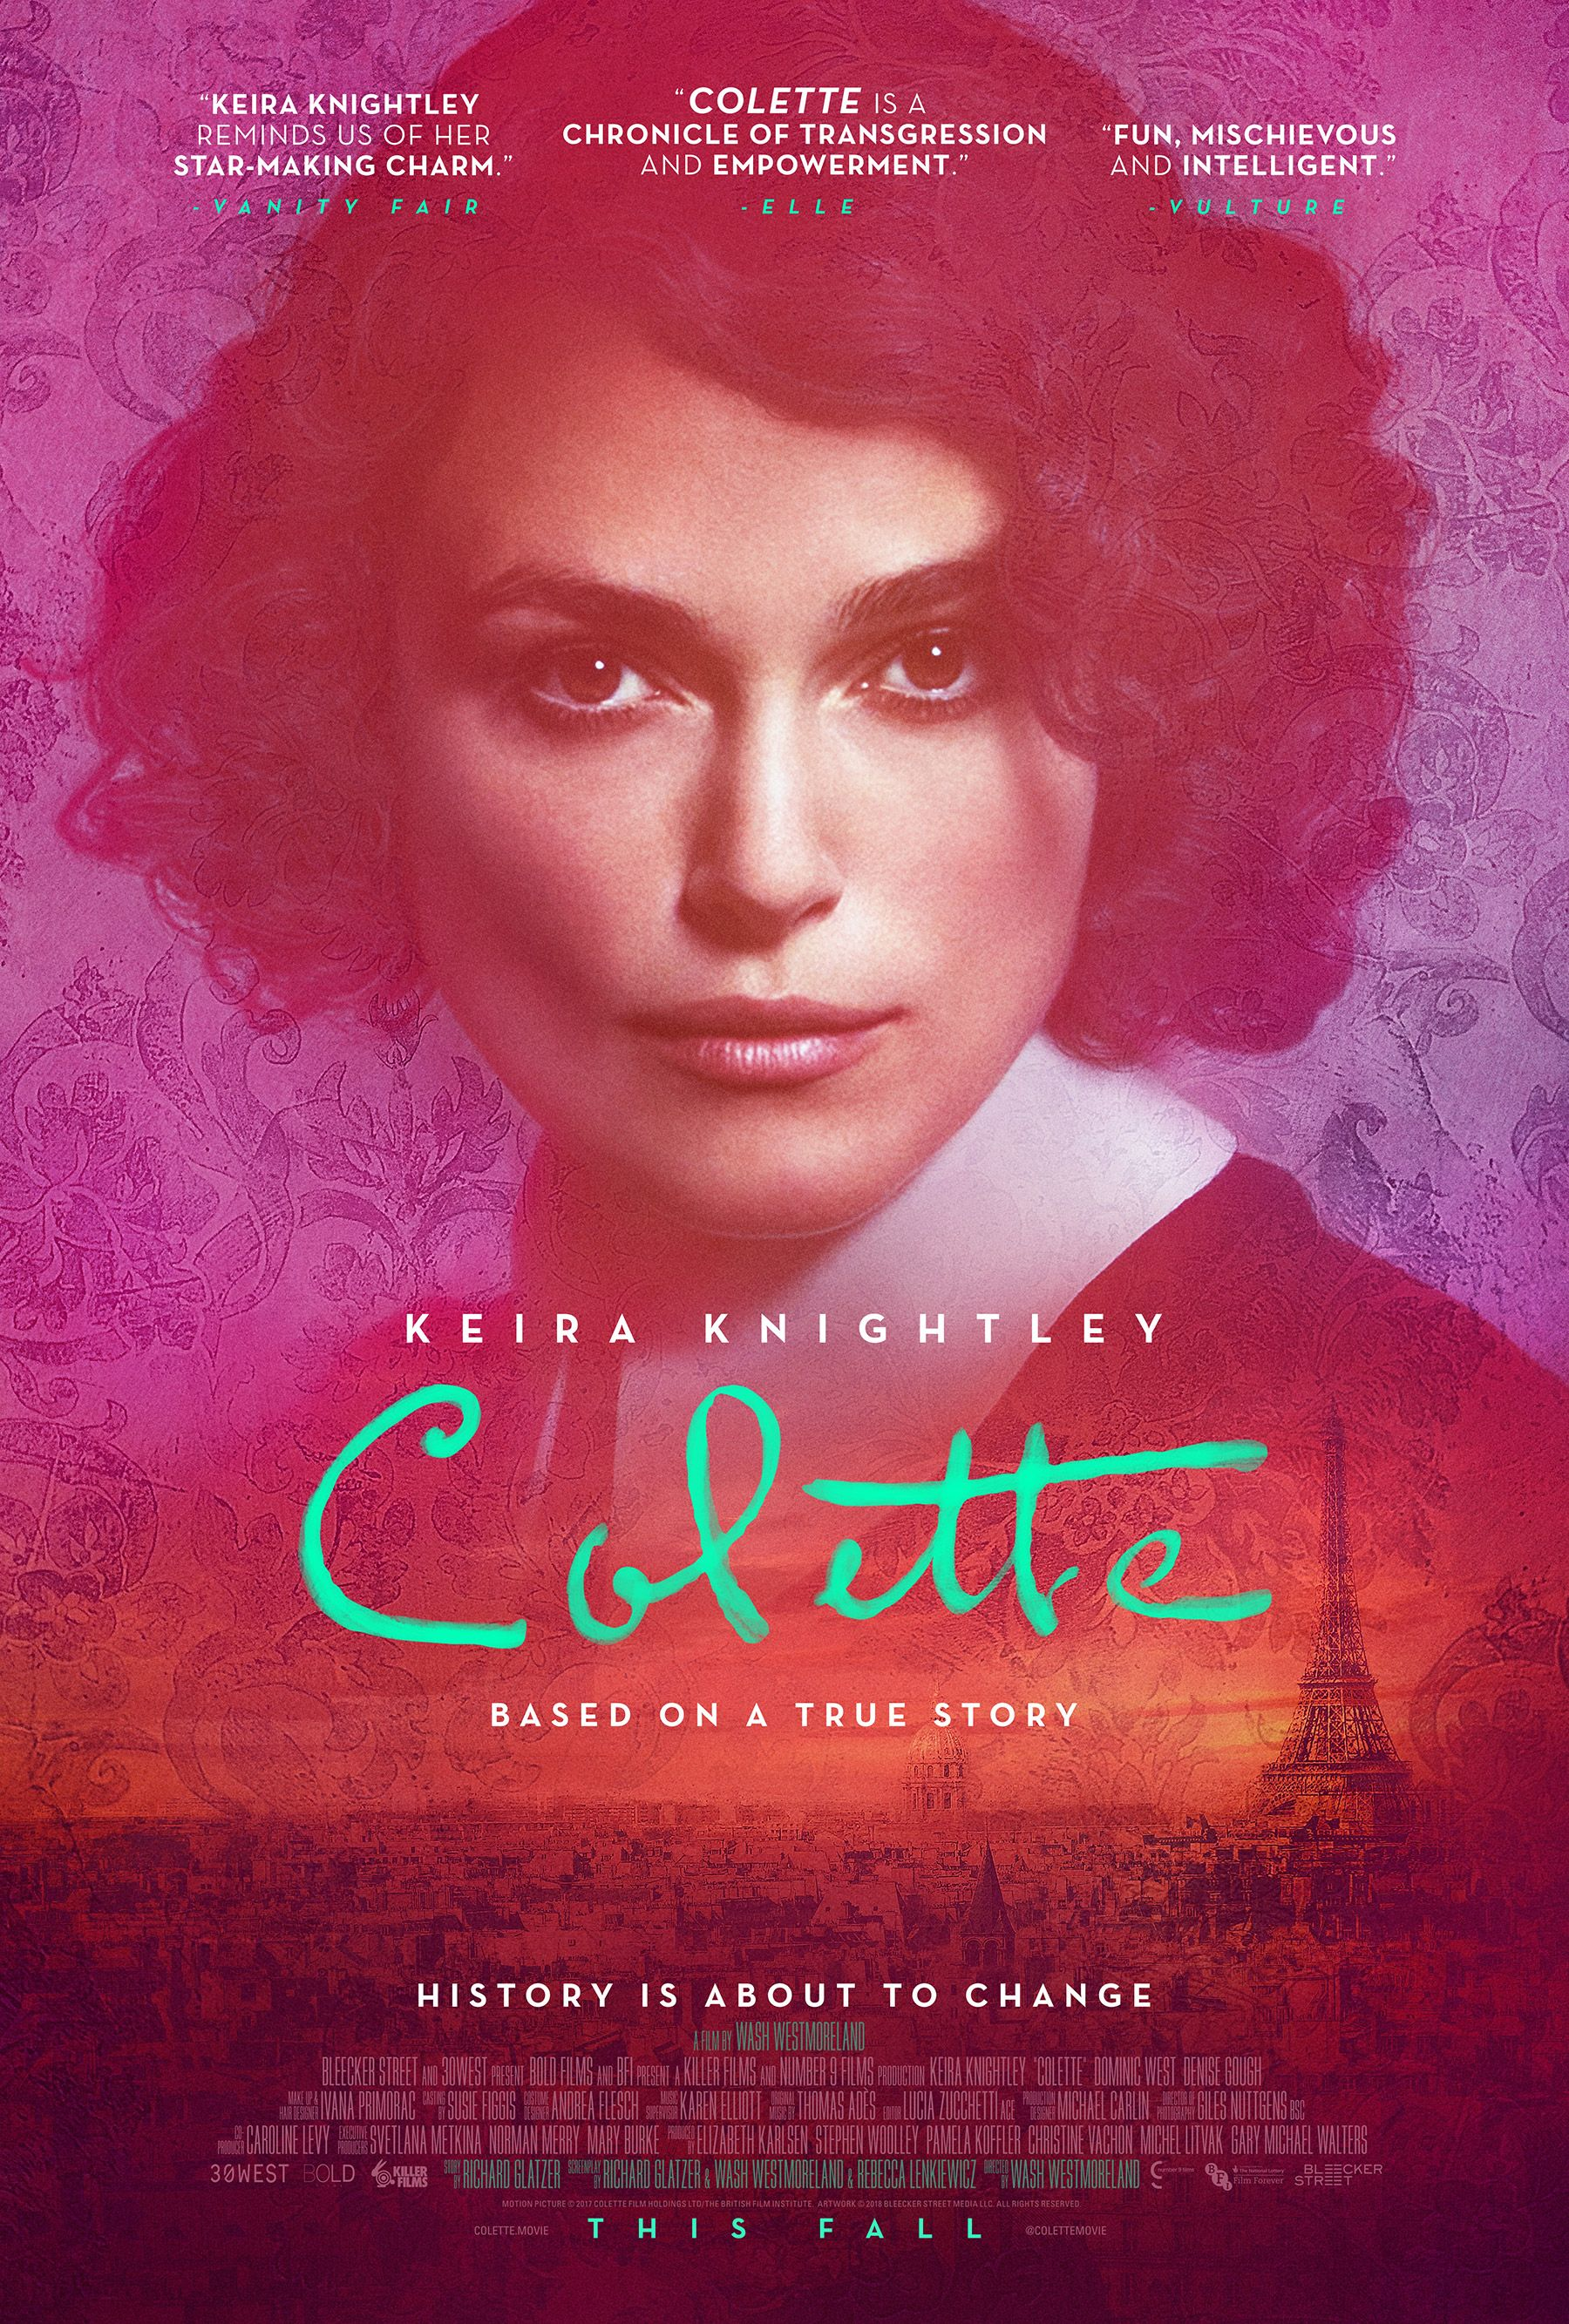 Keira Knightley Flirts With Both Men And Women In Trailer For Colette Keira Knightley Biography Movies Free Movies Online